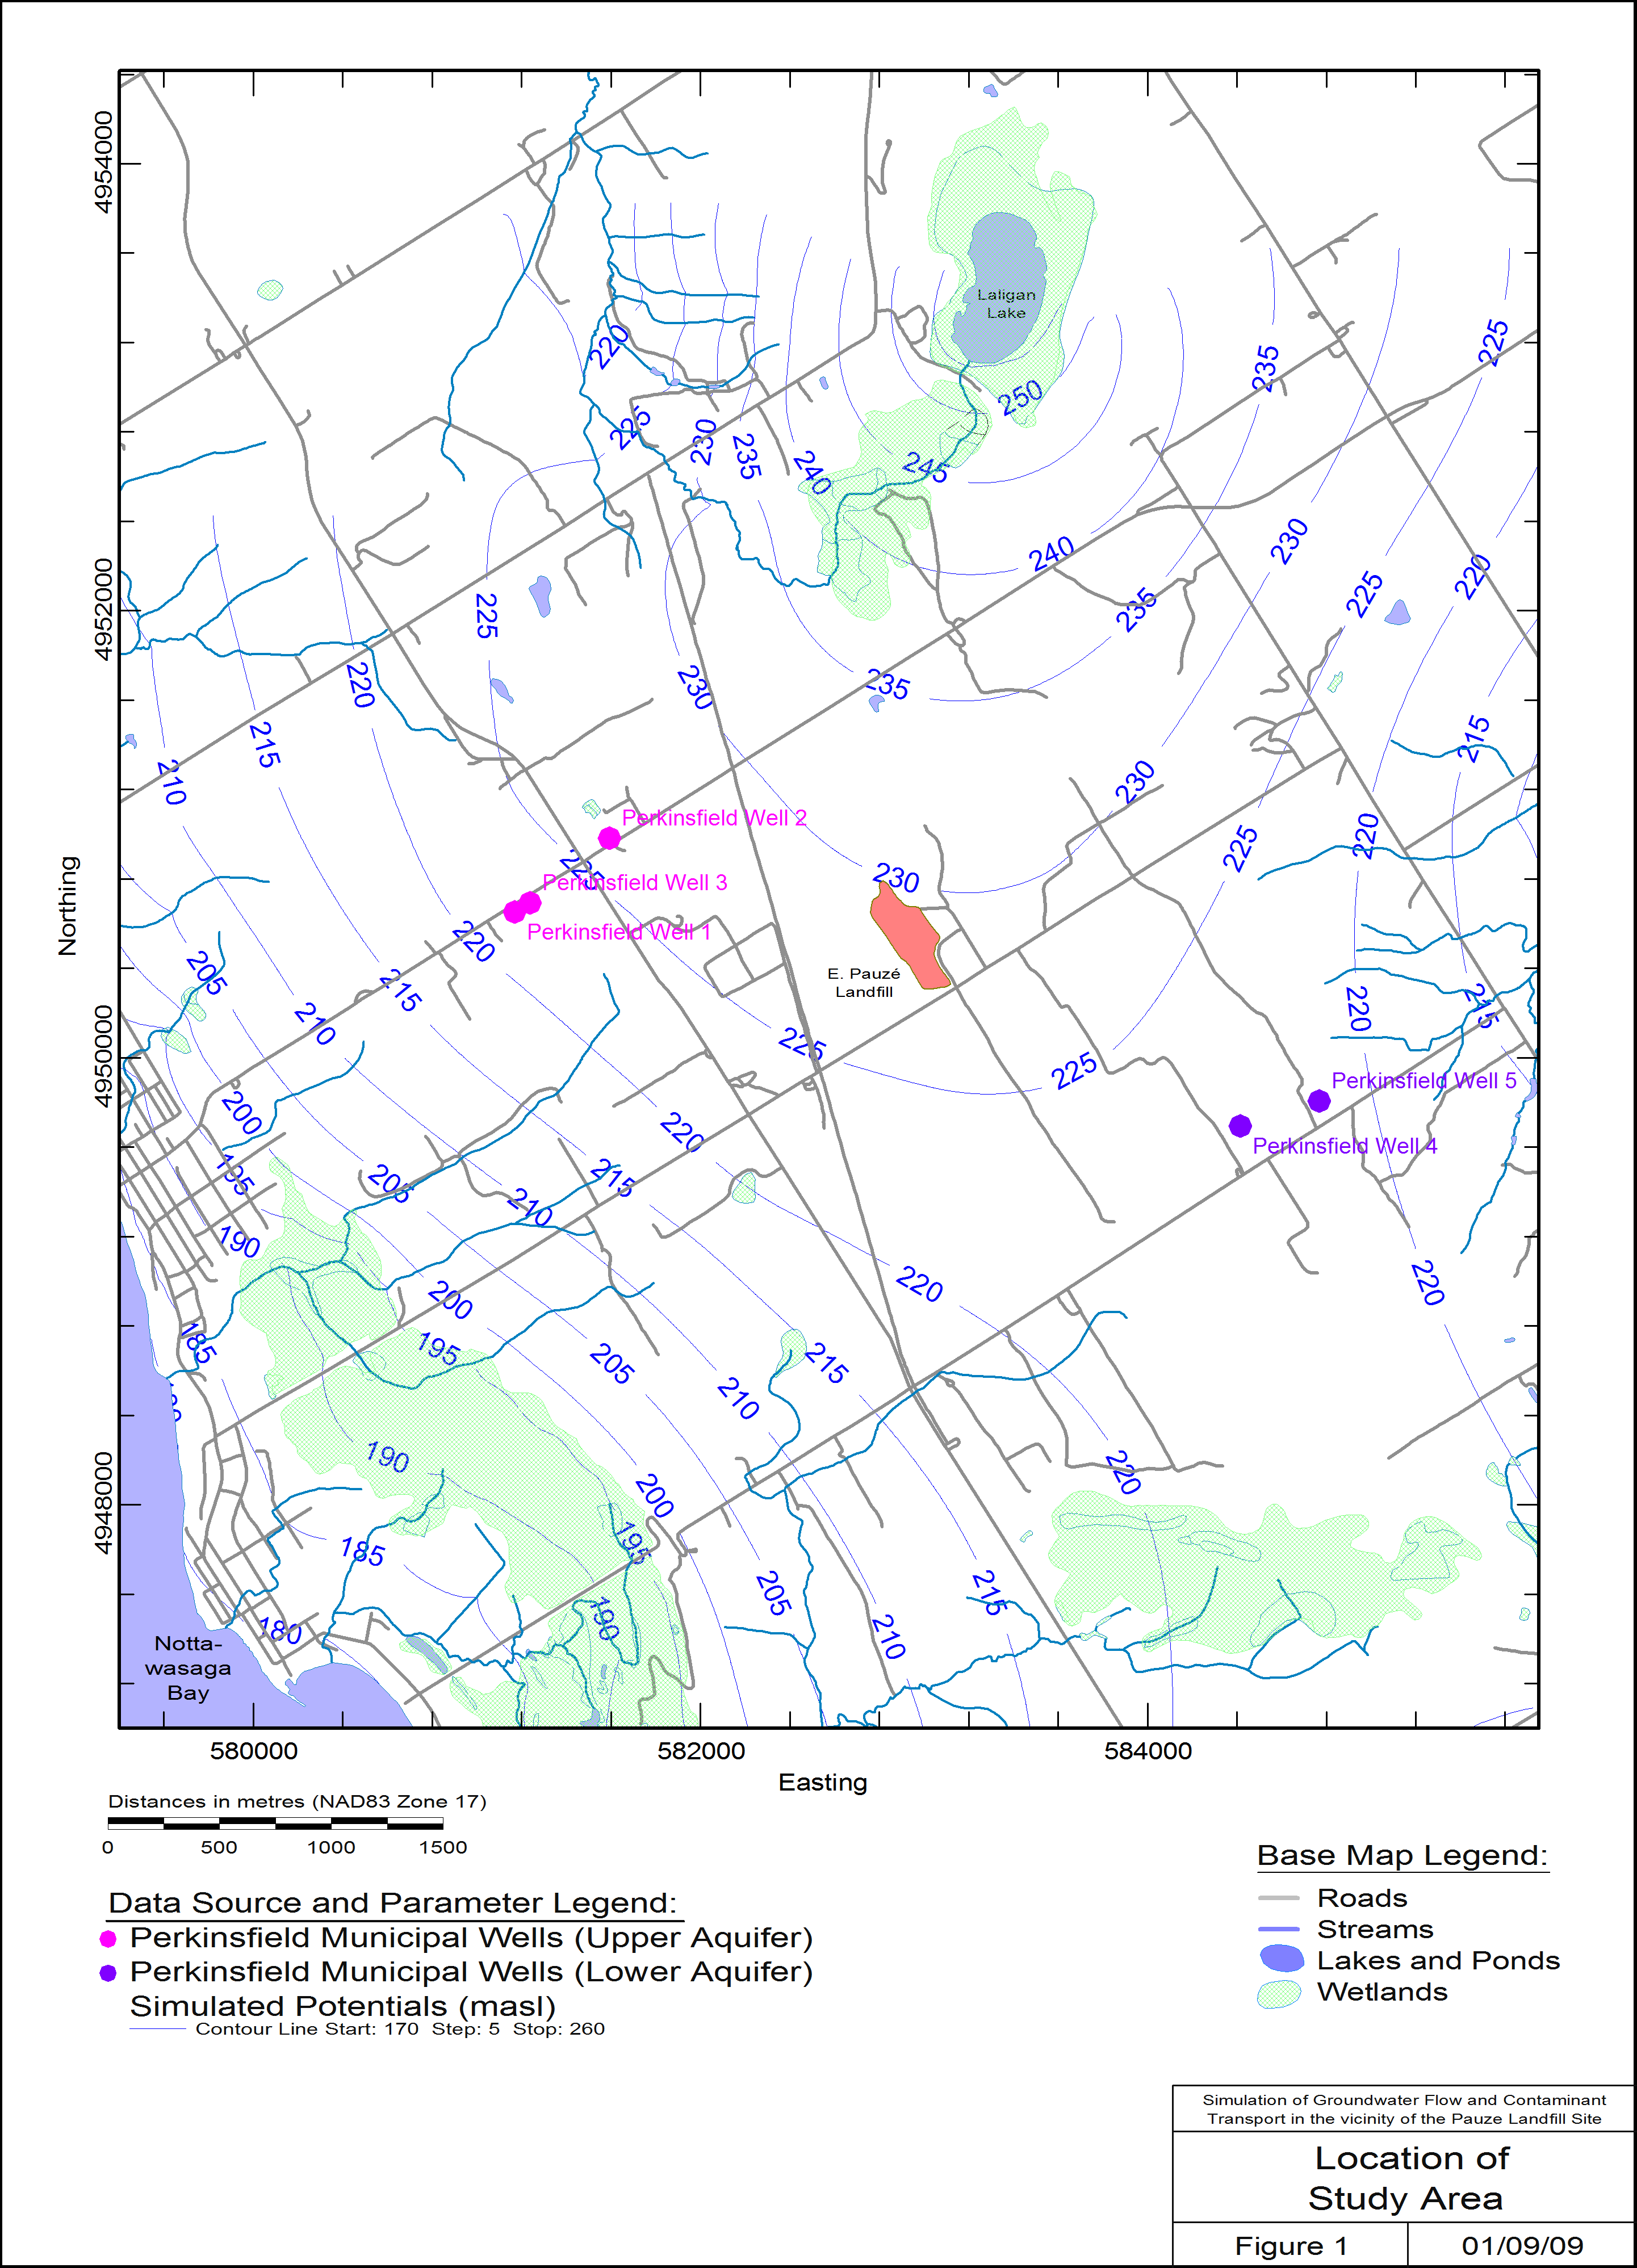 Simulation of Groundwater Flow and TCE Contaminant Transport in the Vicinity of the Pauzé Landfill, Perkinsfield, ON